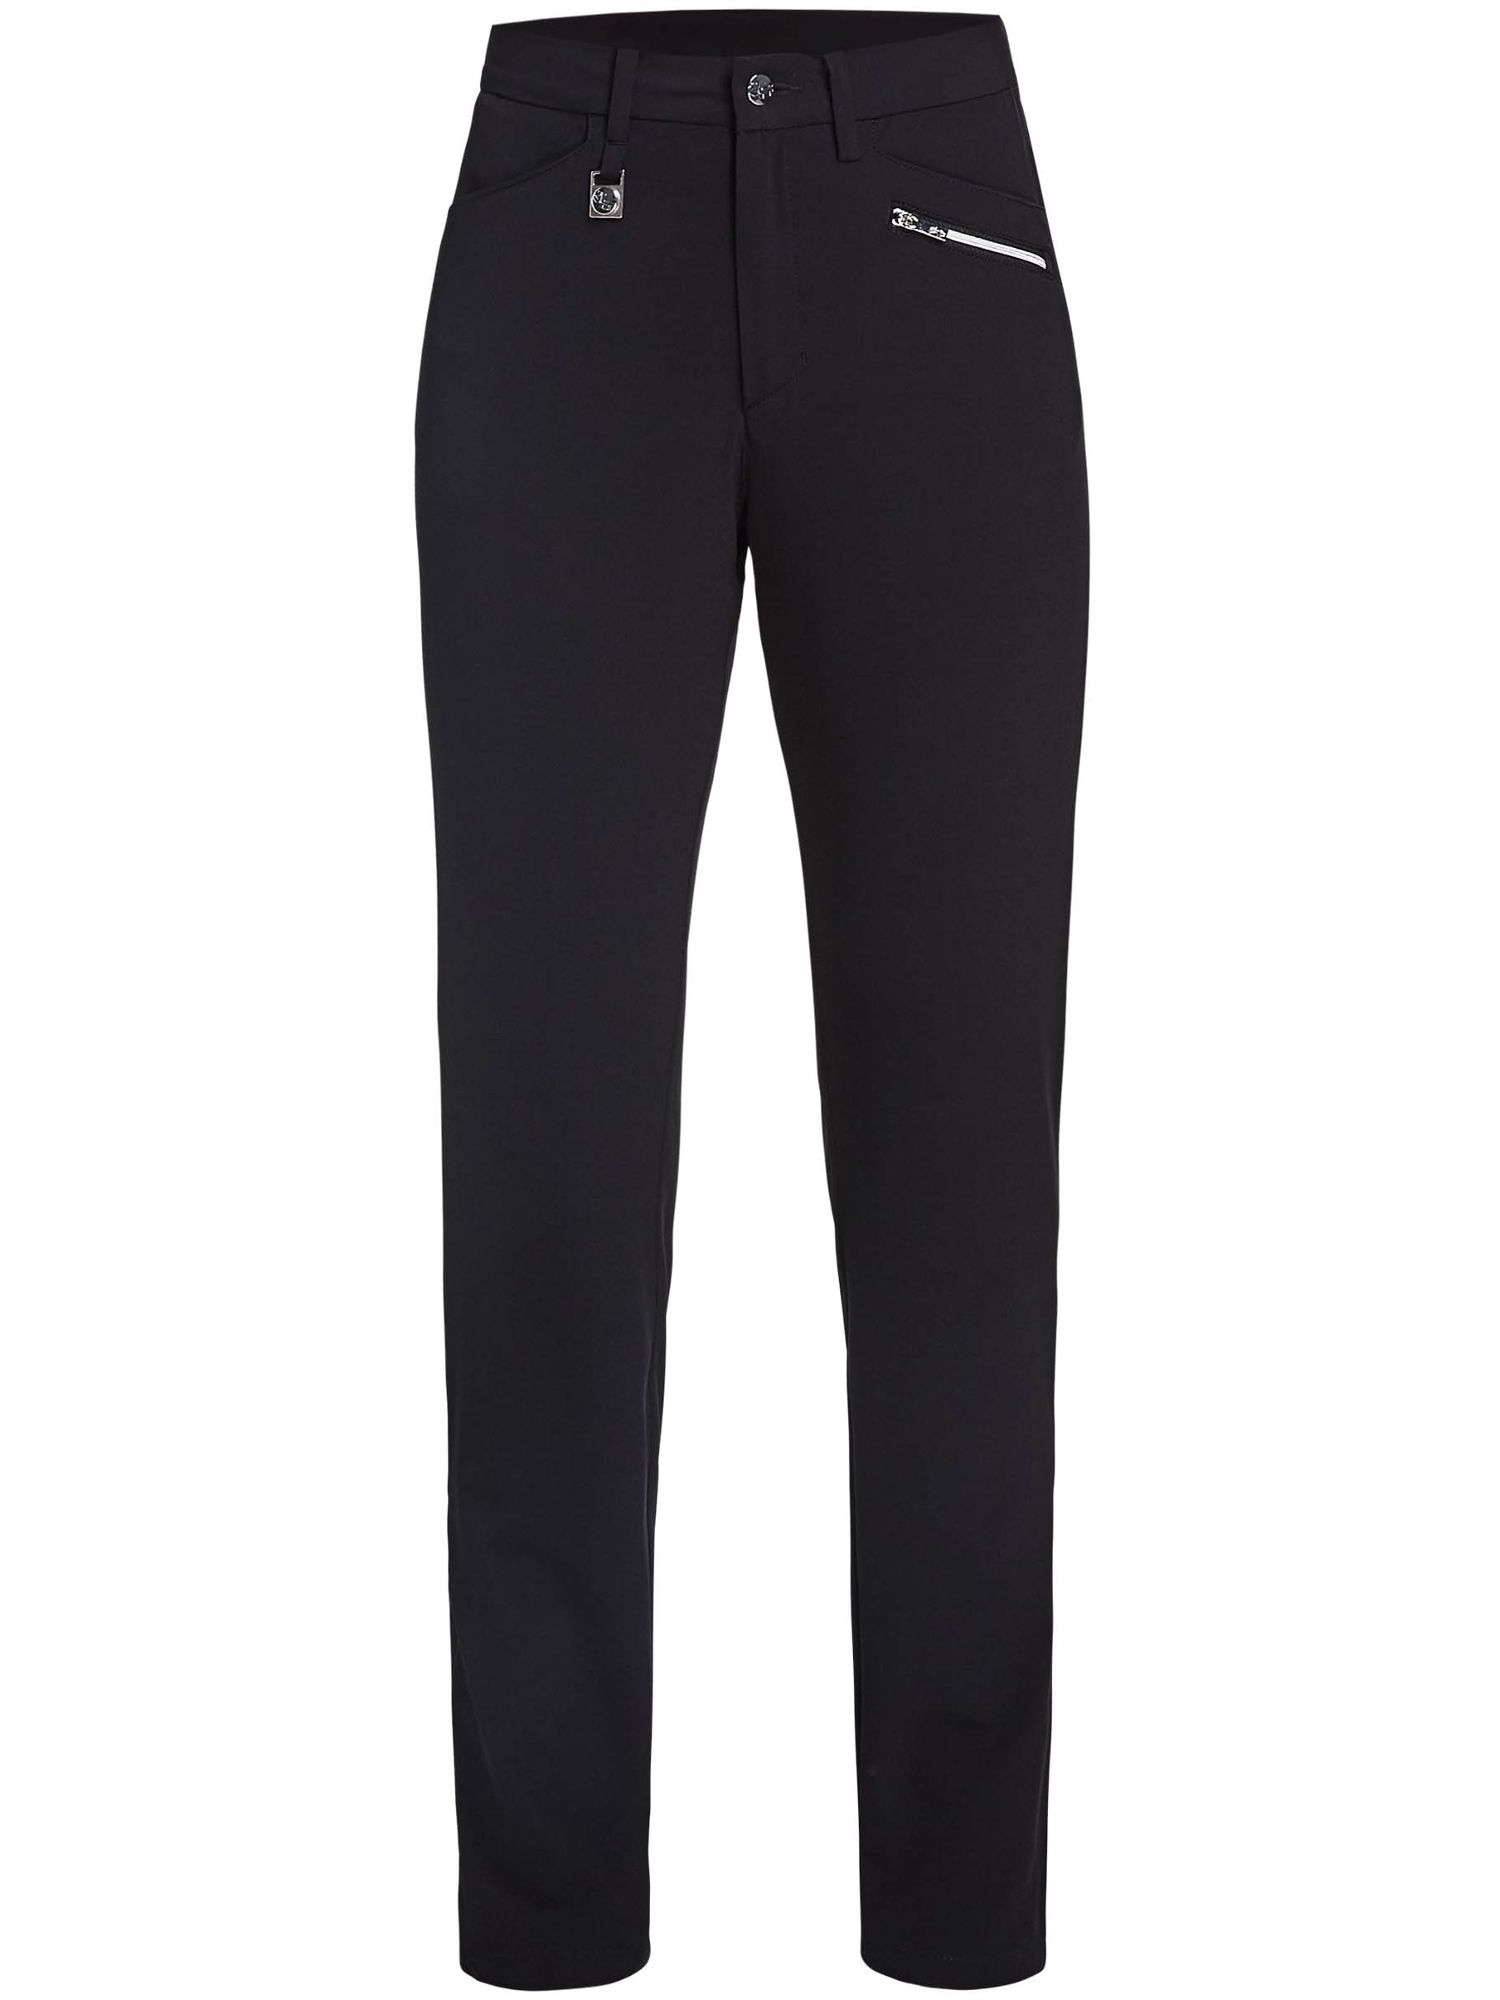 Rohnisch Comfort Stretch Trouser, Black